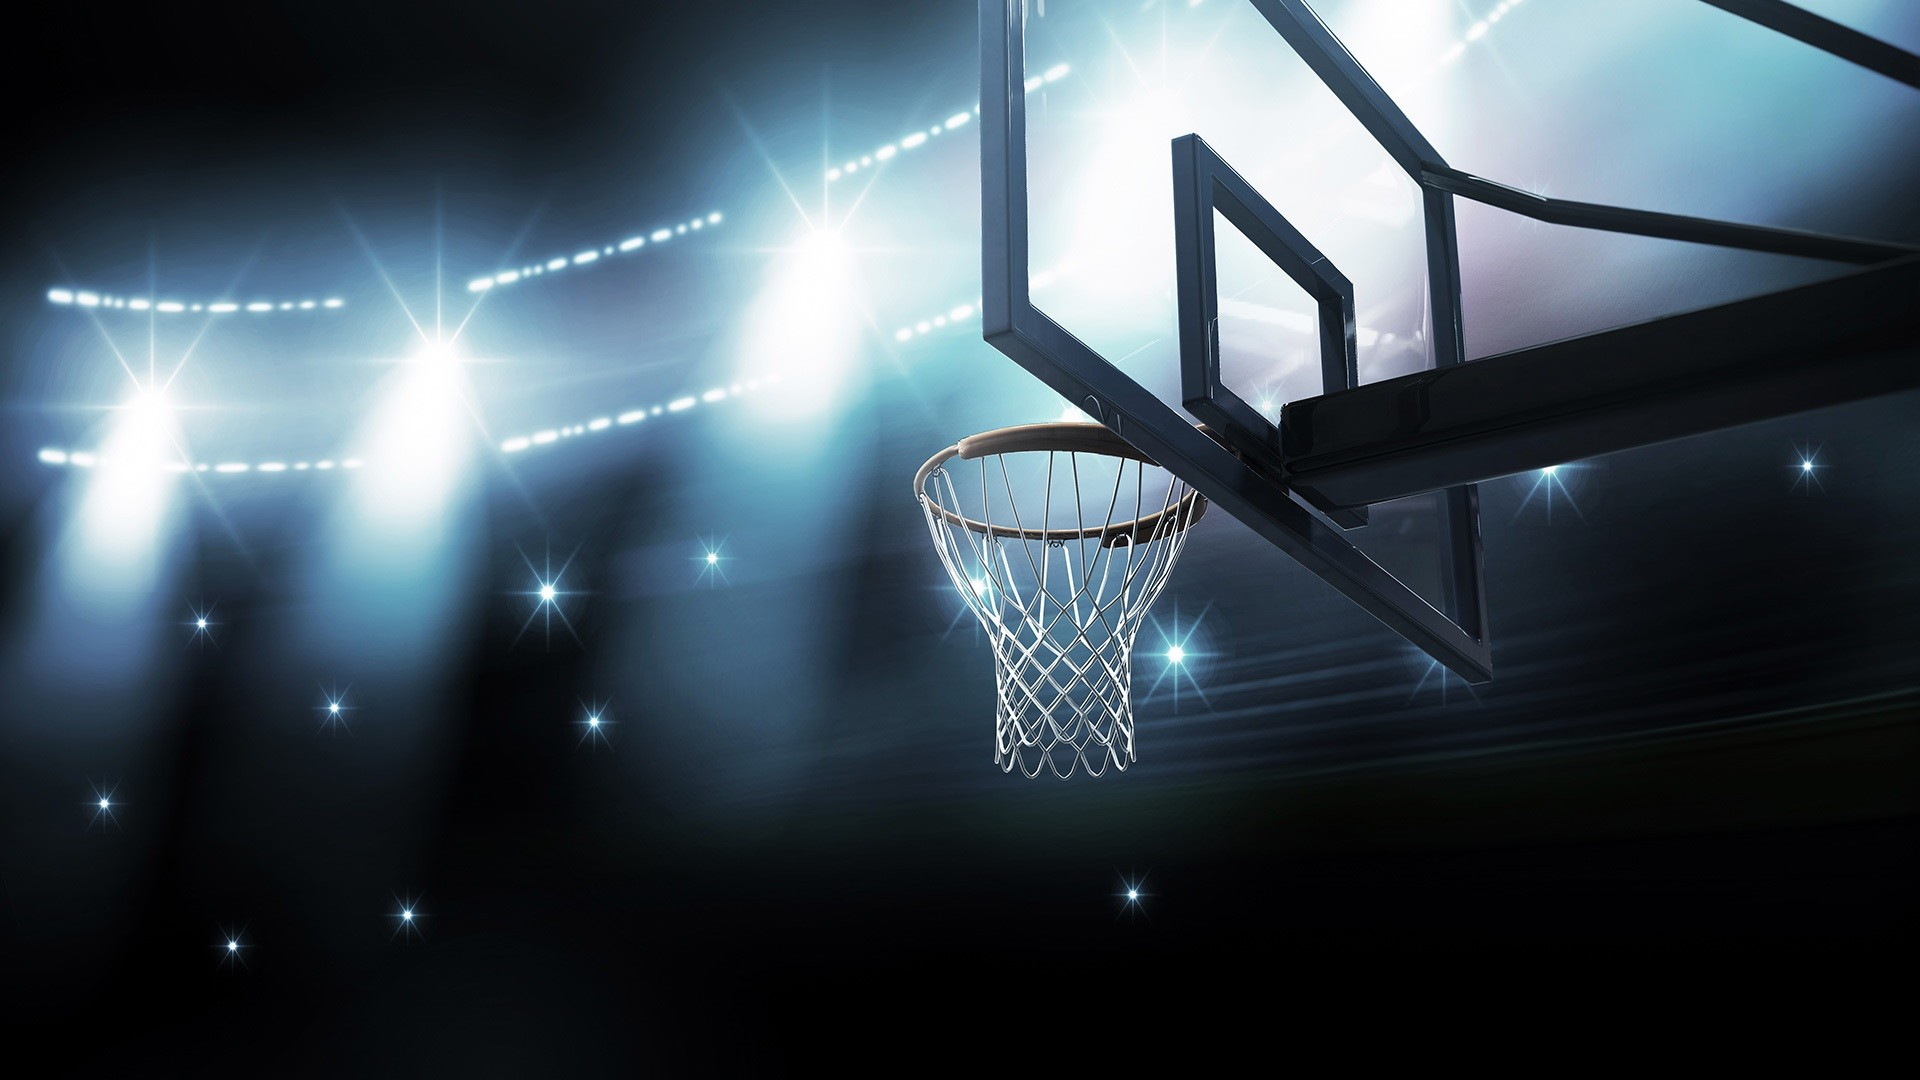 2048x1325 Explore Nike Ad Free And More Basketball Wallpapers